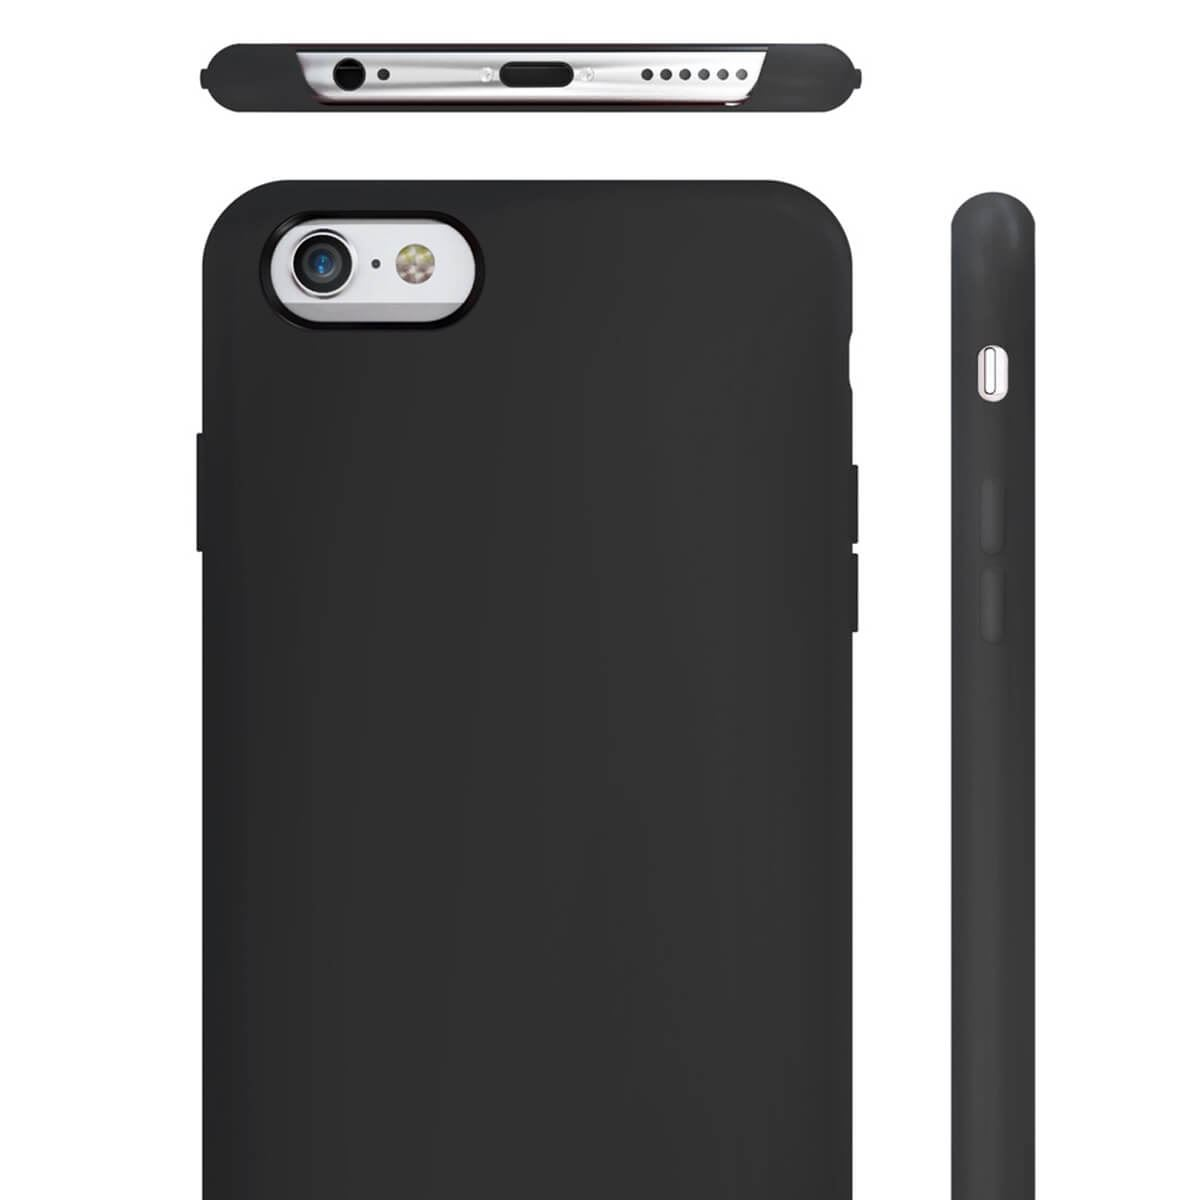 Liquid-Silicone-Phone-Case-For-Apple-iPhone-Soft-Shockproof-Matte-Back-Cover thumbnail 9